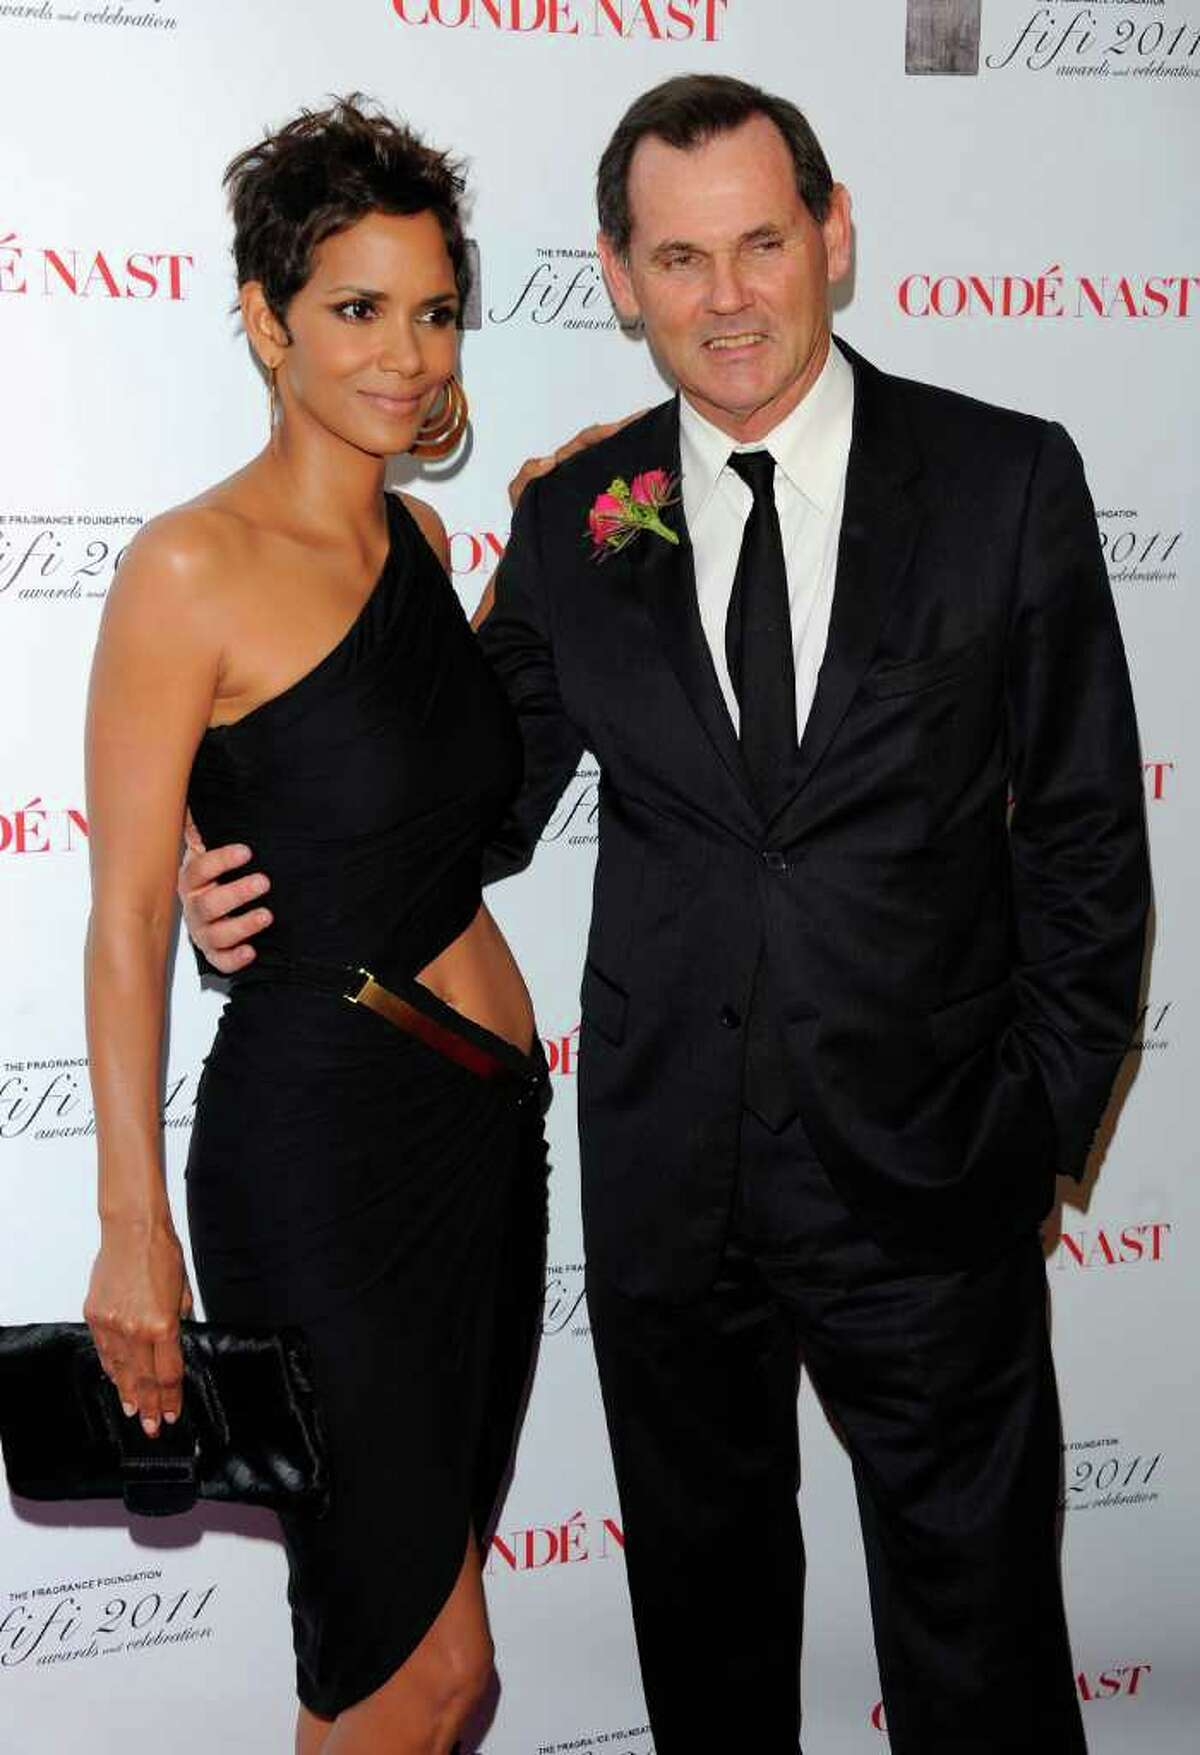 Halle Berry and Coty Inc. CEO Bernd Beetz attend the 2011 FiFi Awards at The Tent at Lincoln Center in New York City.